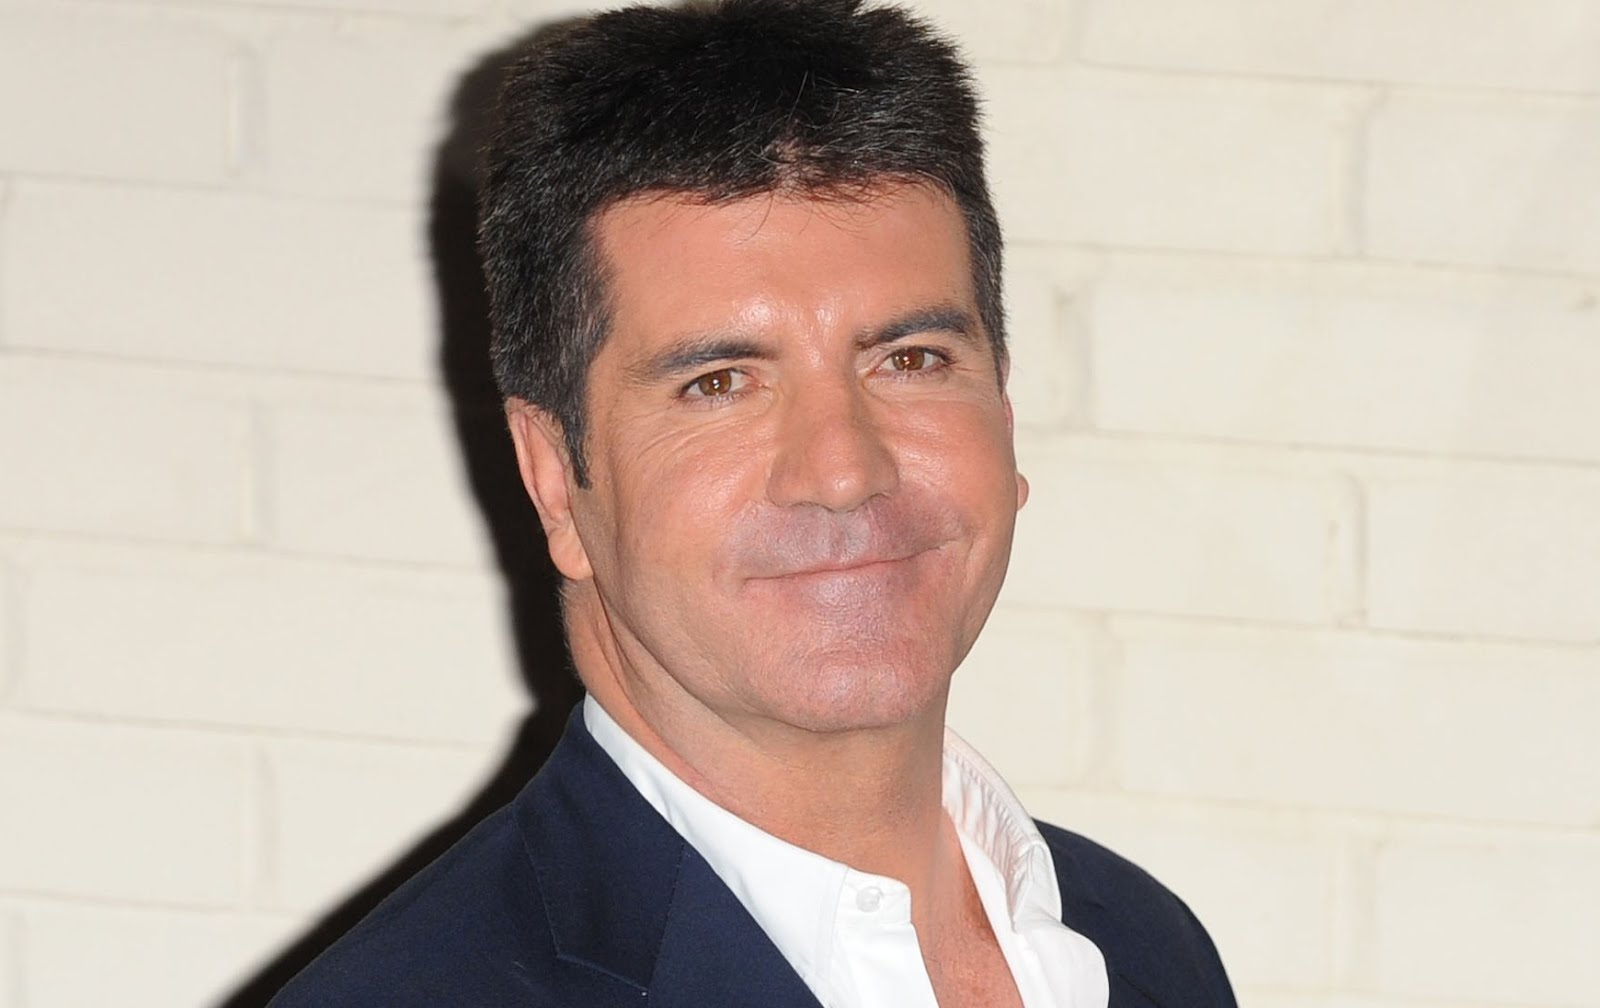 Simon Cowell Wallpaper